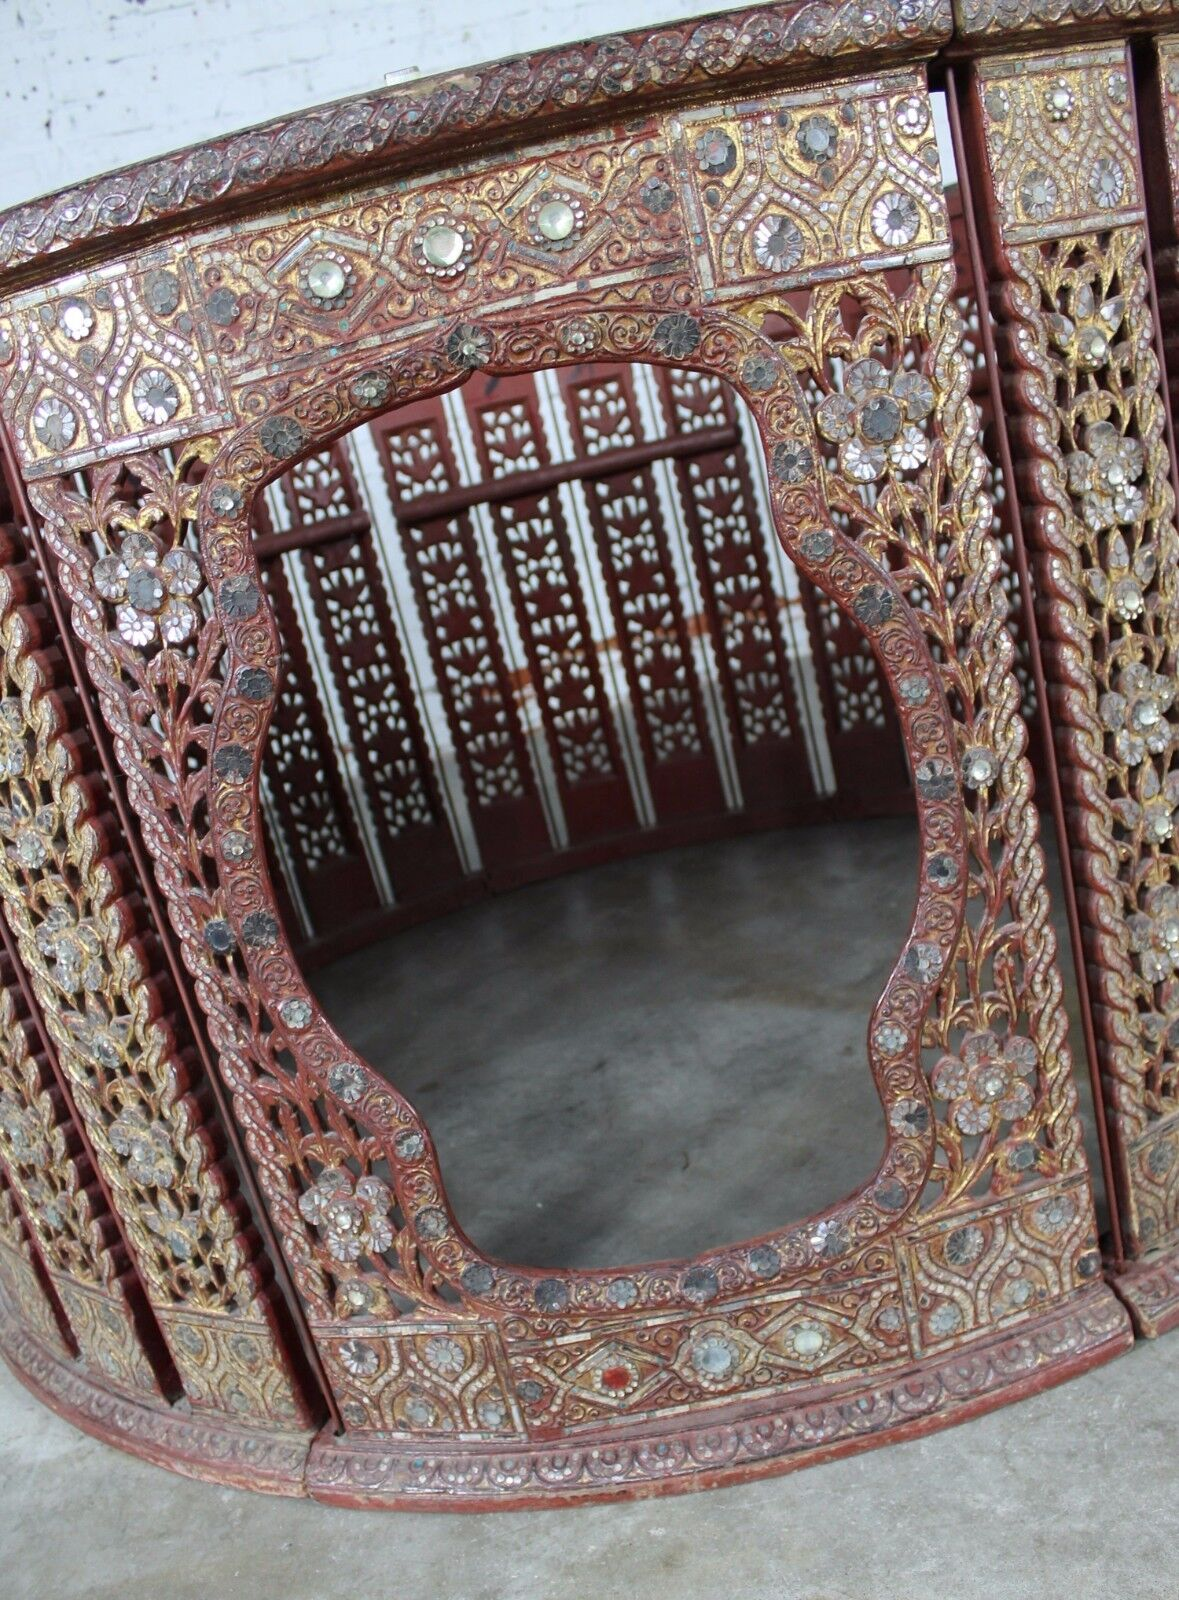 Antiques Antiques Antique Burmese Orchestra Hsain Wain Drum/percussion Circle Carved Panel Table